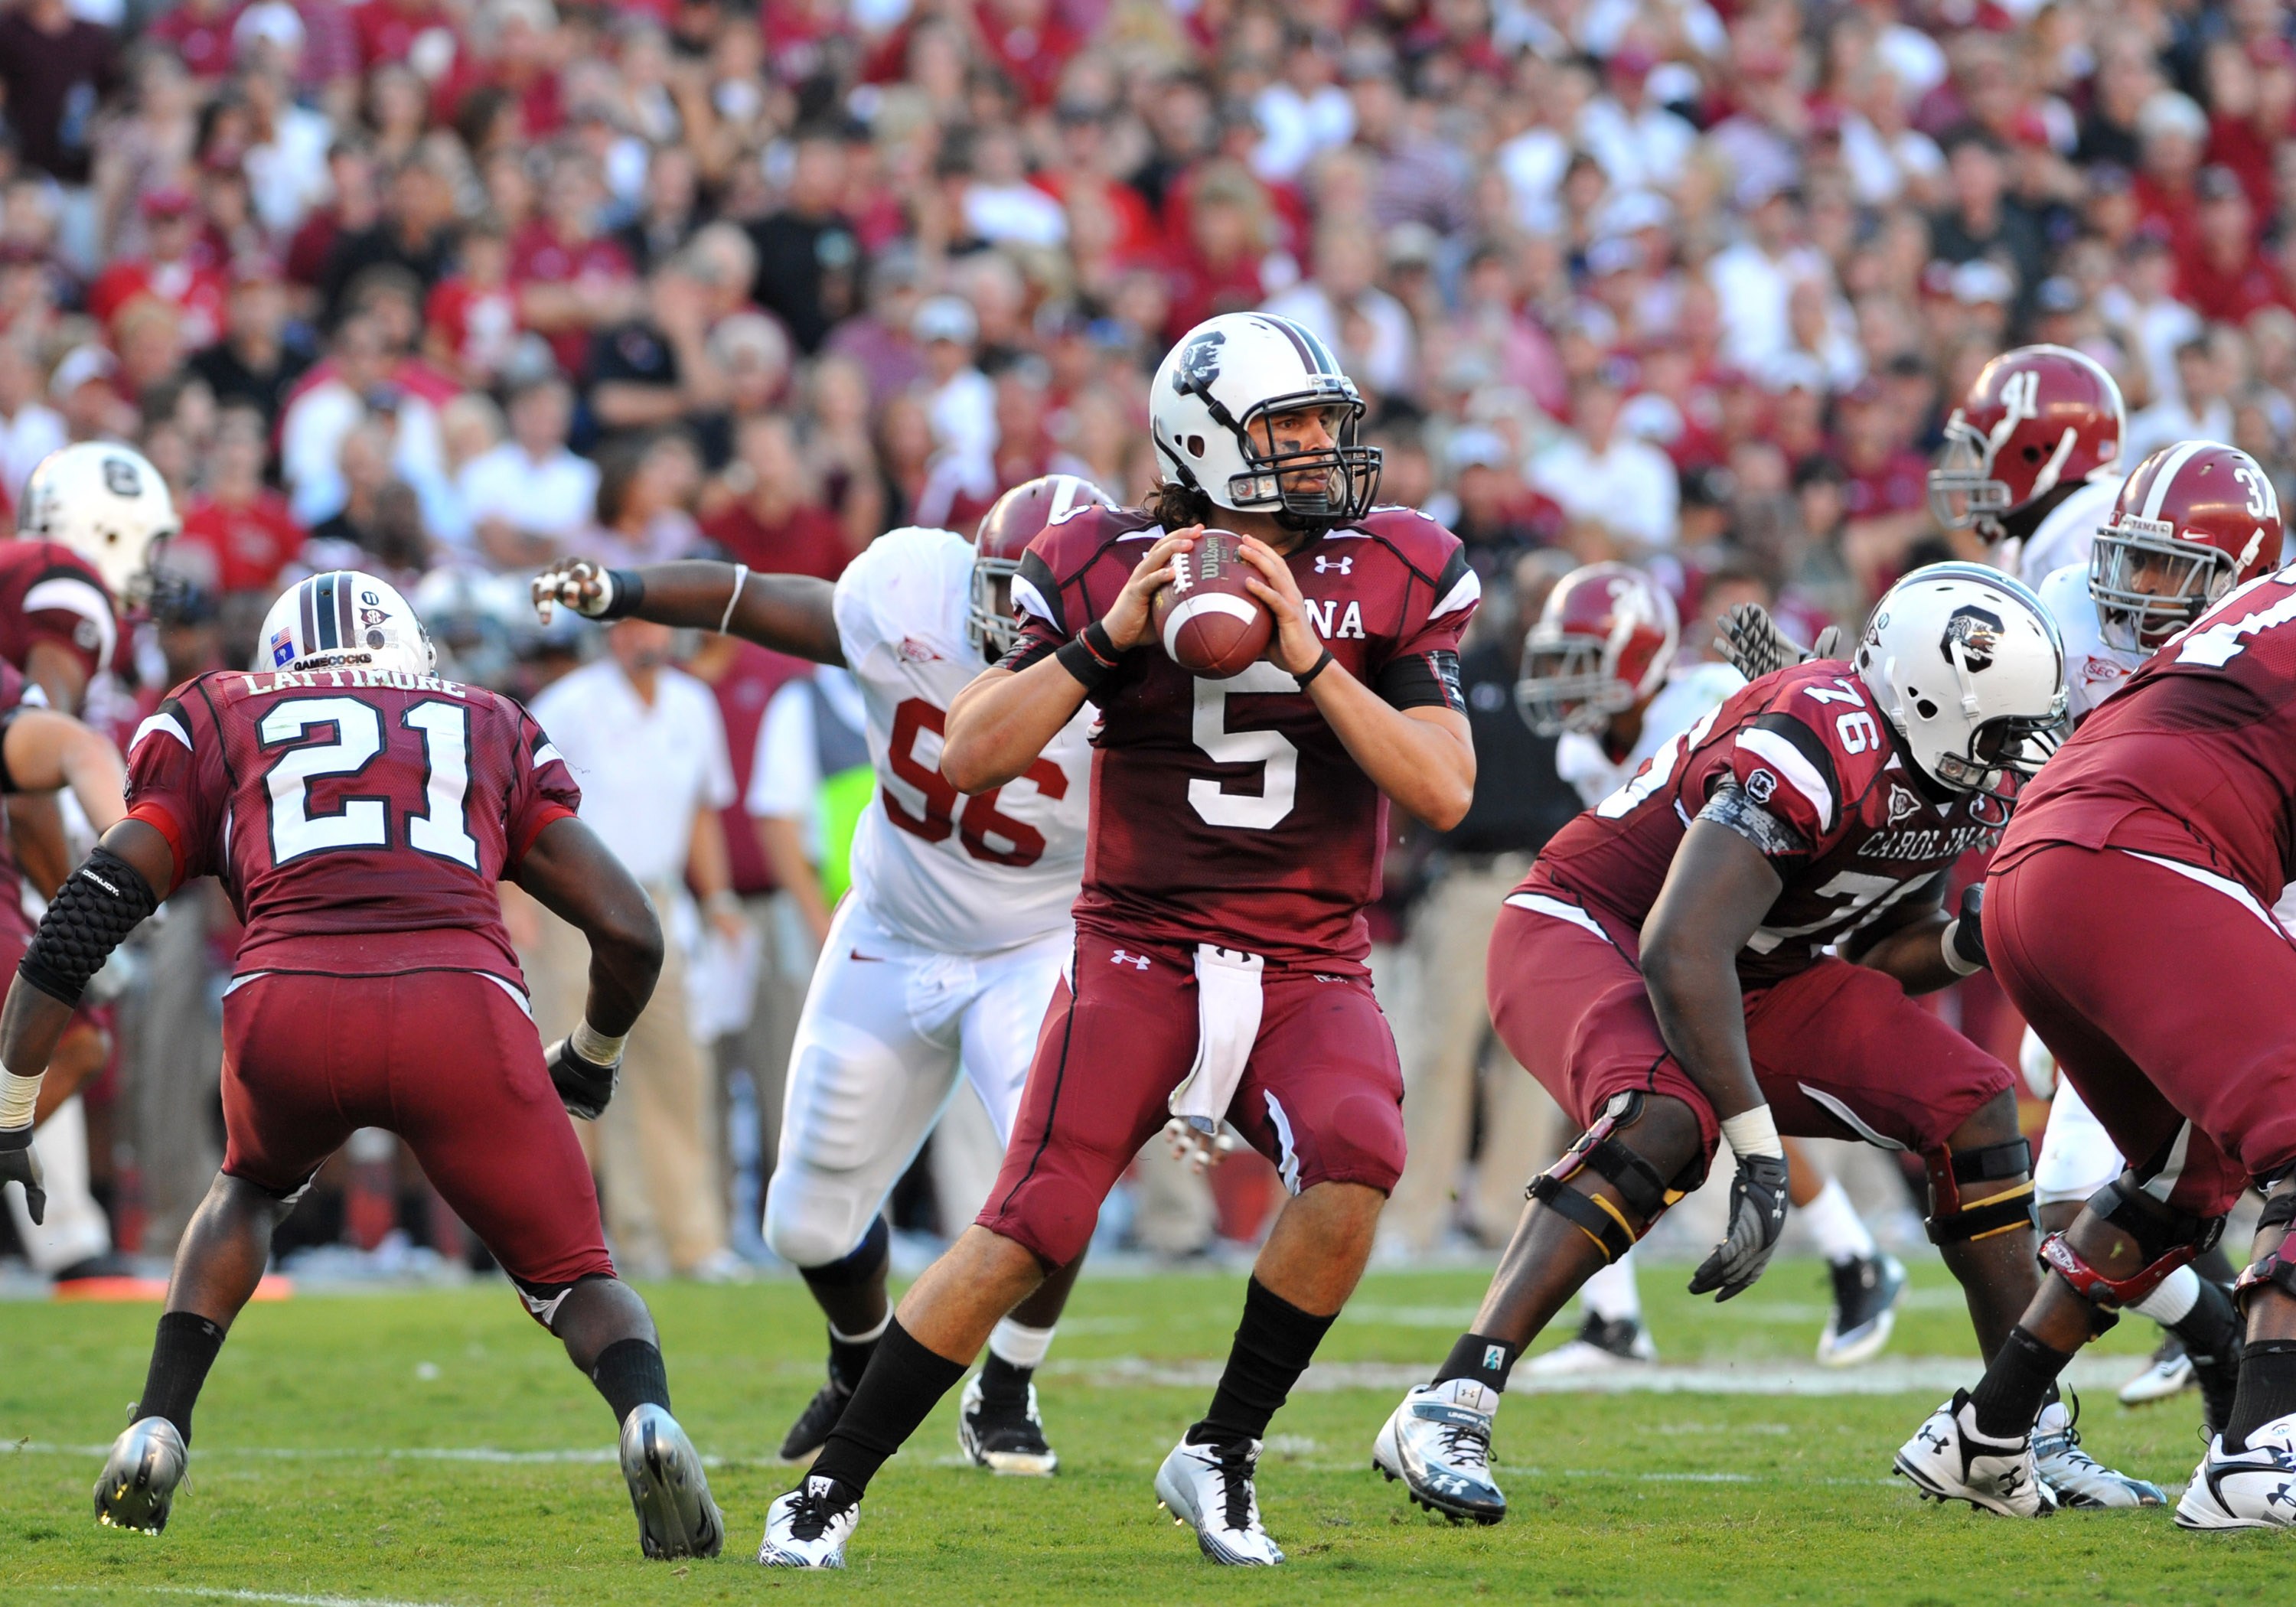 COLUMBIA, SC - OCTOBER 9: Quarterback Stephen Garcia #5 of the South Carolina Gamecocks sets to pass against the Alabama Crimson Tide October 9, 2010 at Williams-Brice Stadium in Columbia, South Carolina.  (Photo by Al Messerschmidt/Getty Images)